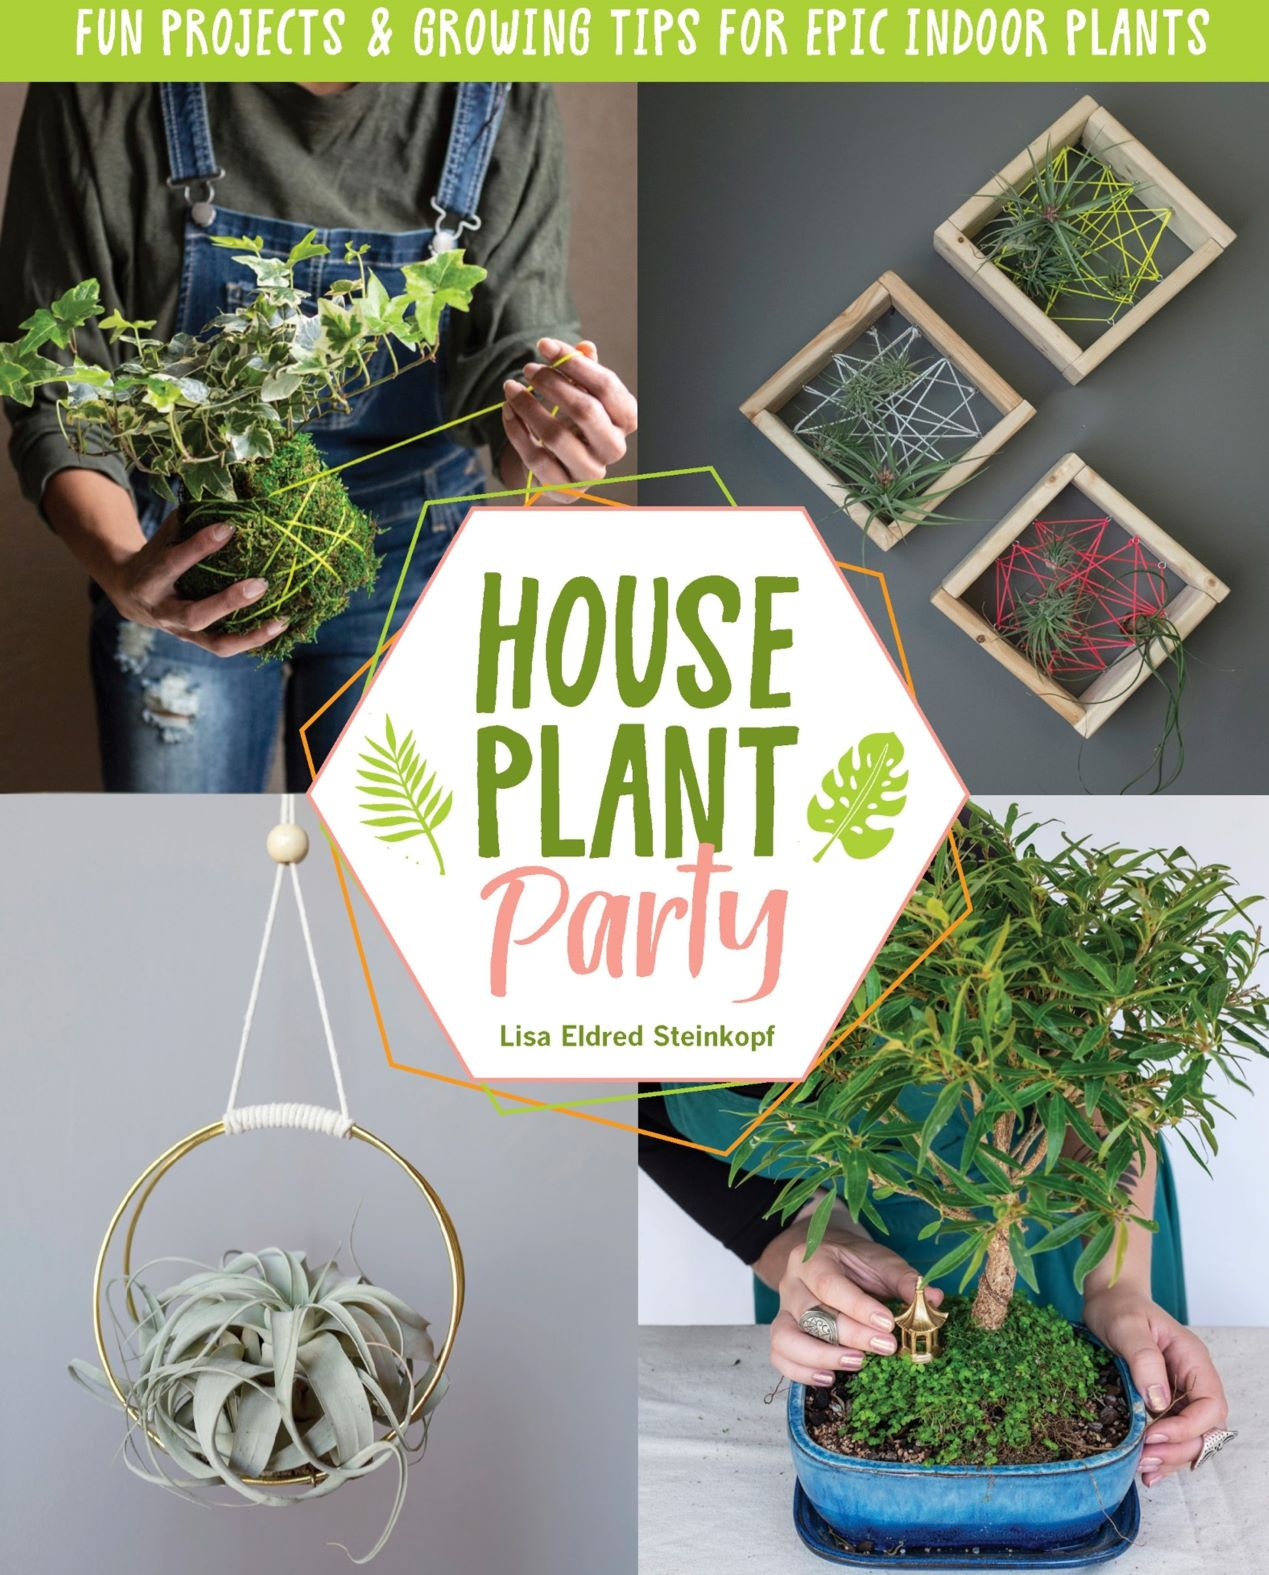 House Plant Party, Author Lisa Eldred Stenkopf Virtual Lecture